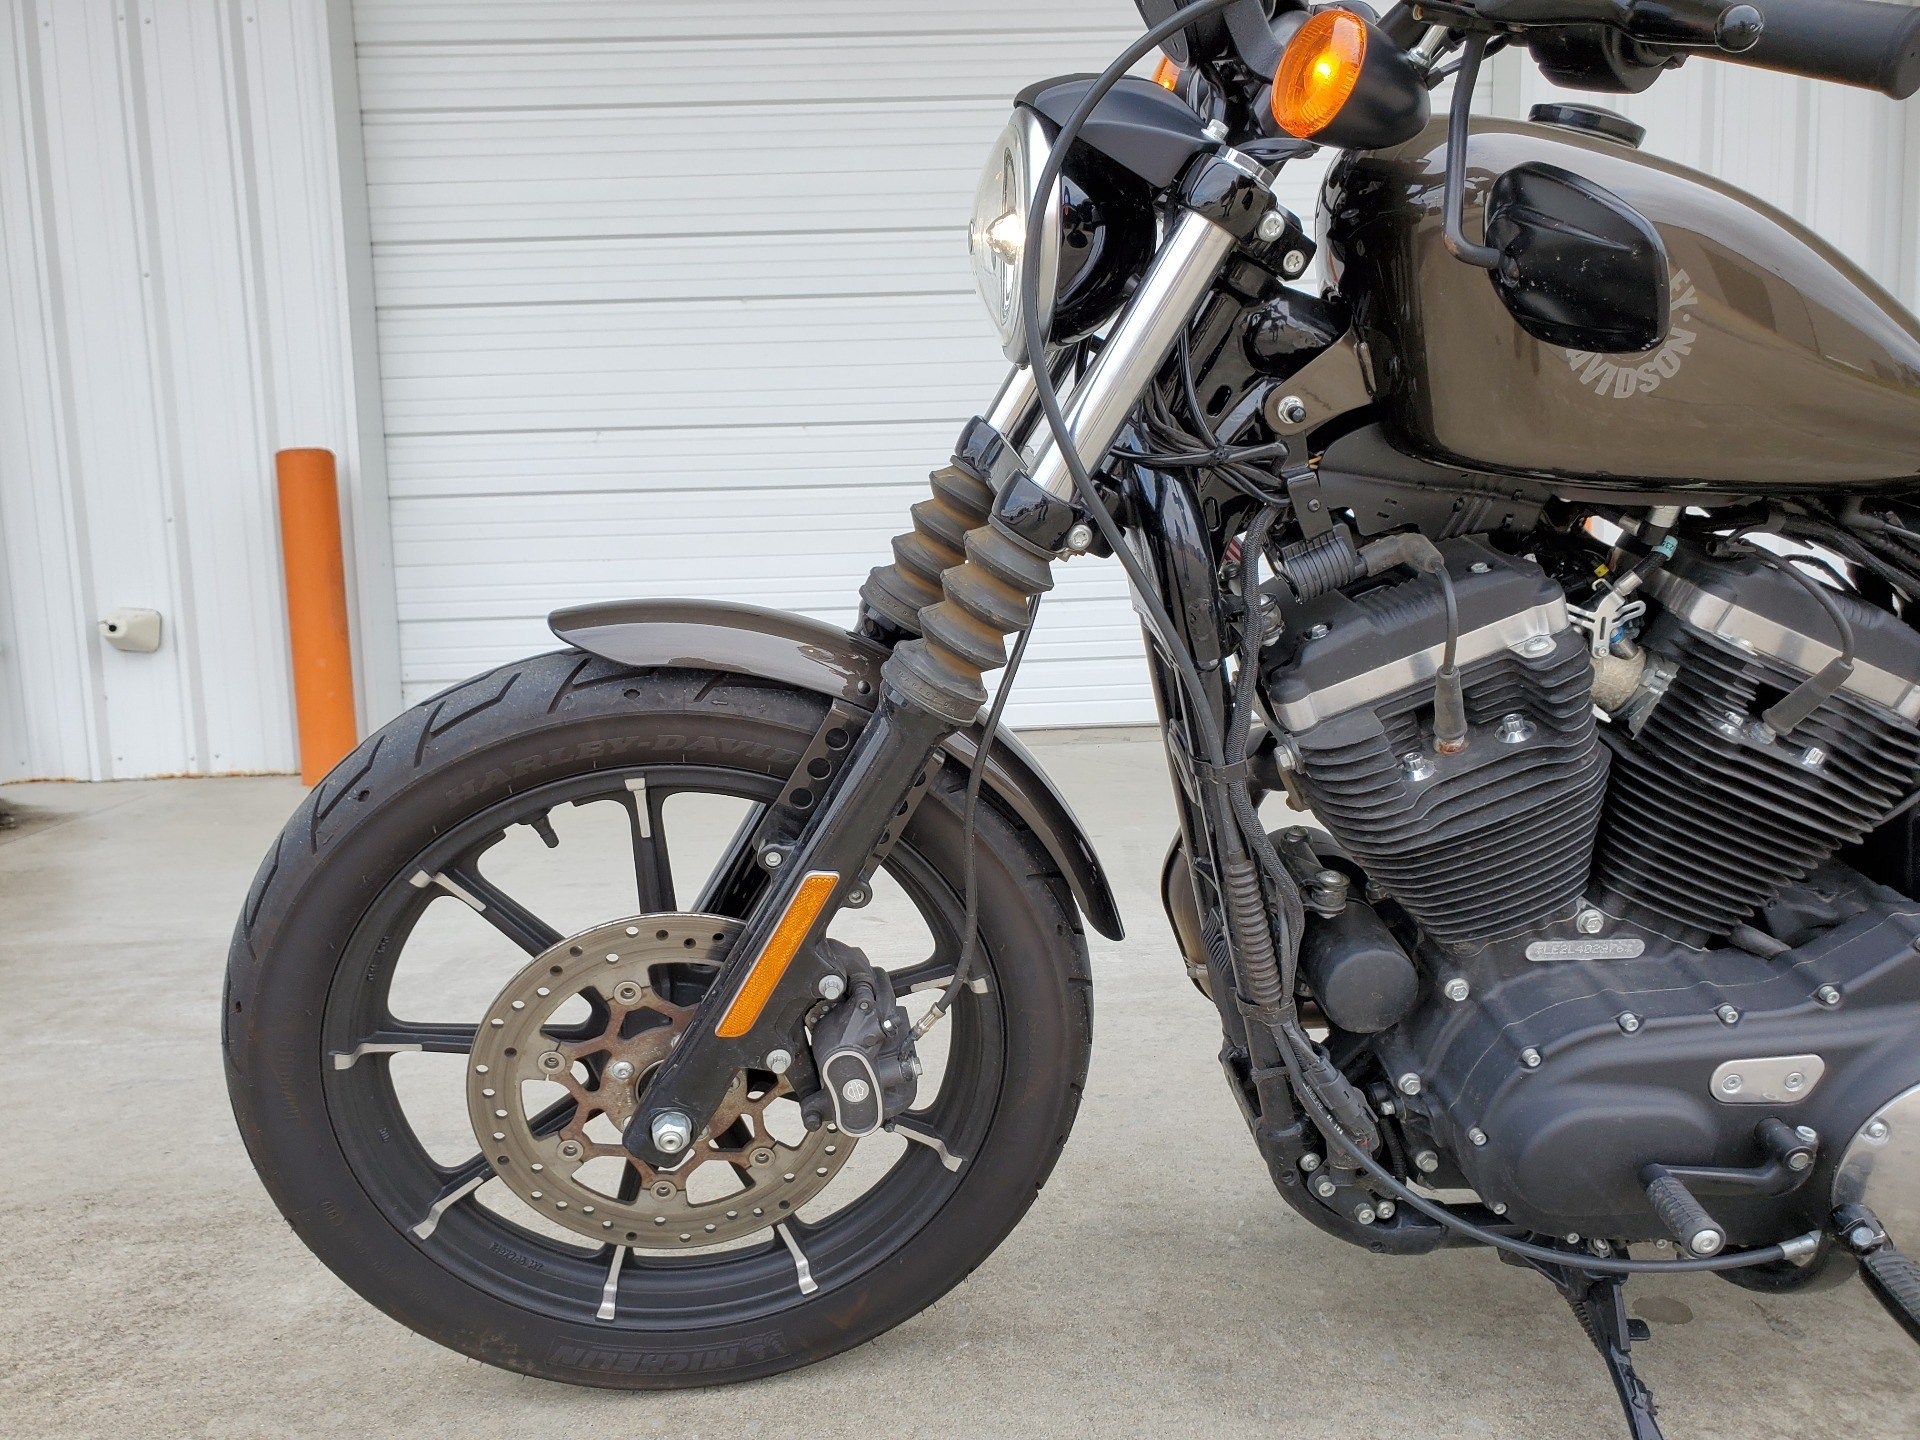 2020 Harley Sportster Iron 883 for sale  near me - Photo 6